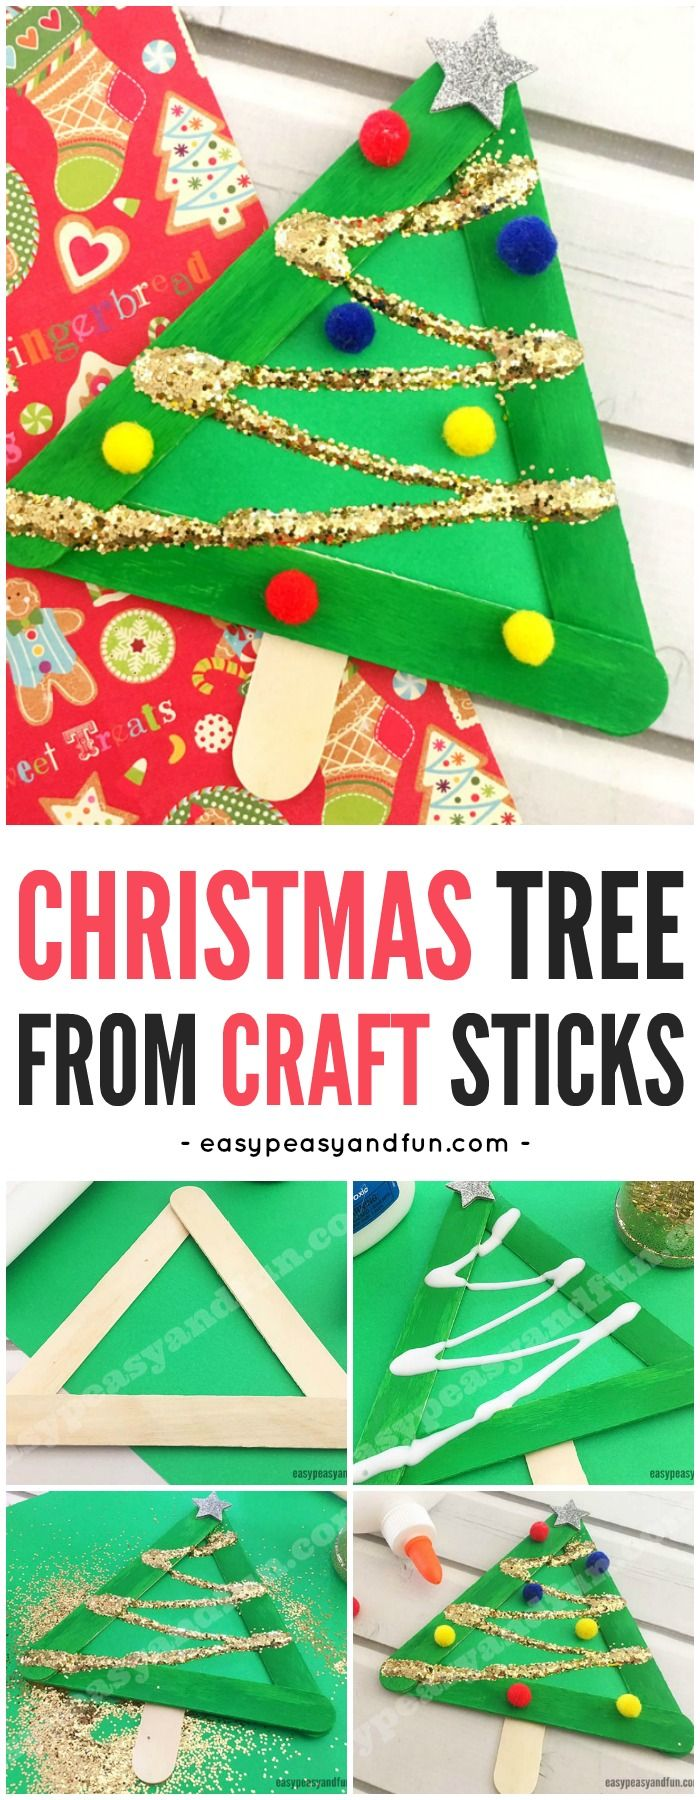 Christmas tree from craft sticks manualidades para for Manualidades de navidad para ninos